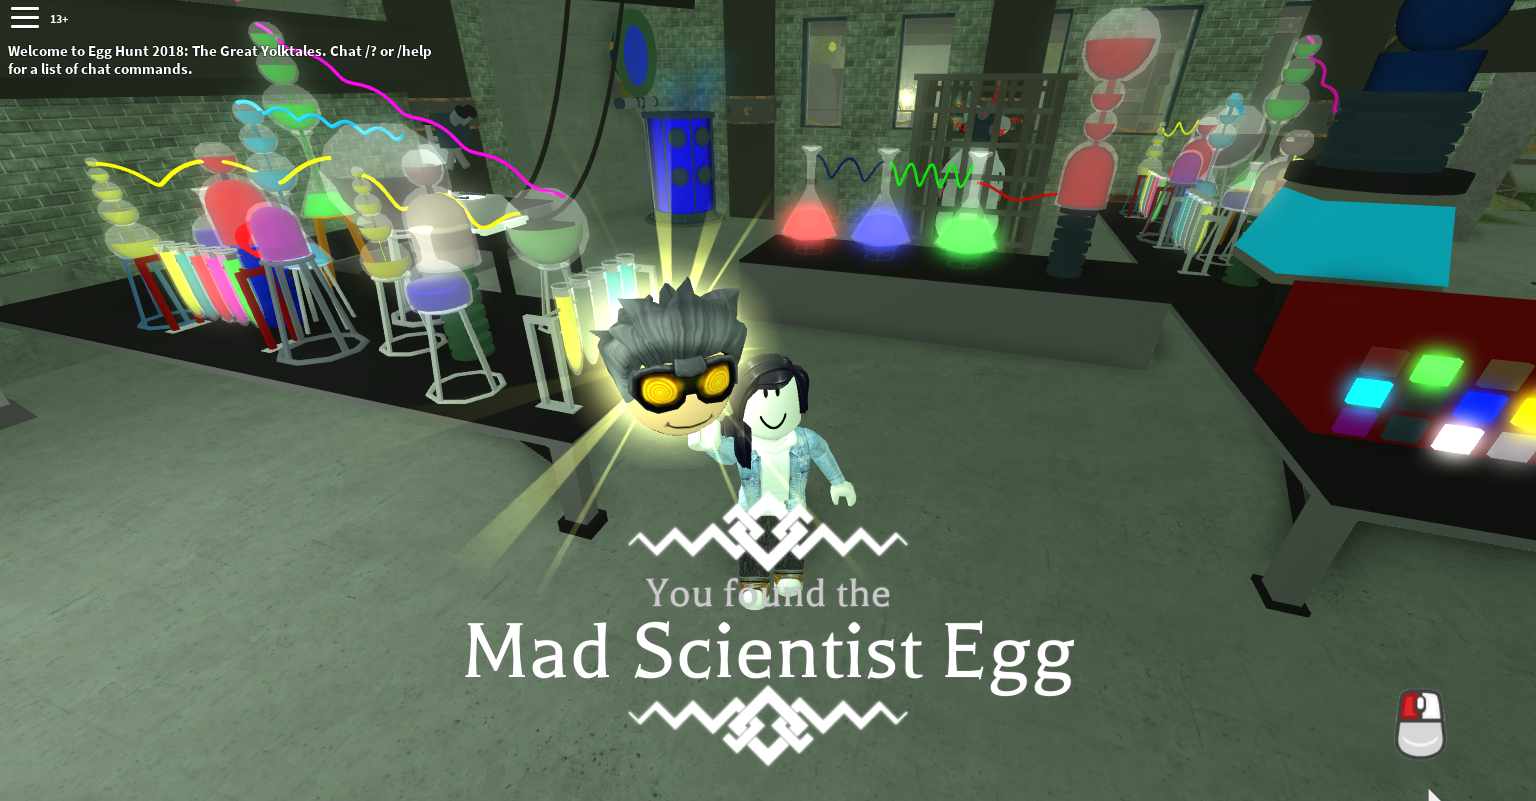 Aveyns Blog Roblox Egg Hunt 2018 How To Find All The Eggs - how to get all eggs in roblox egg hunt 2018 the great yolktales